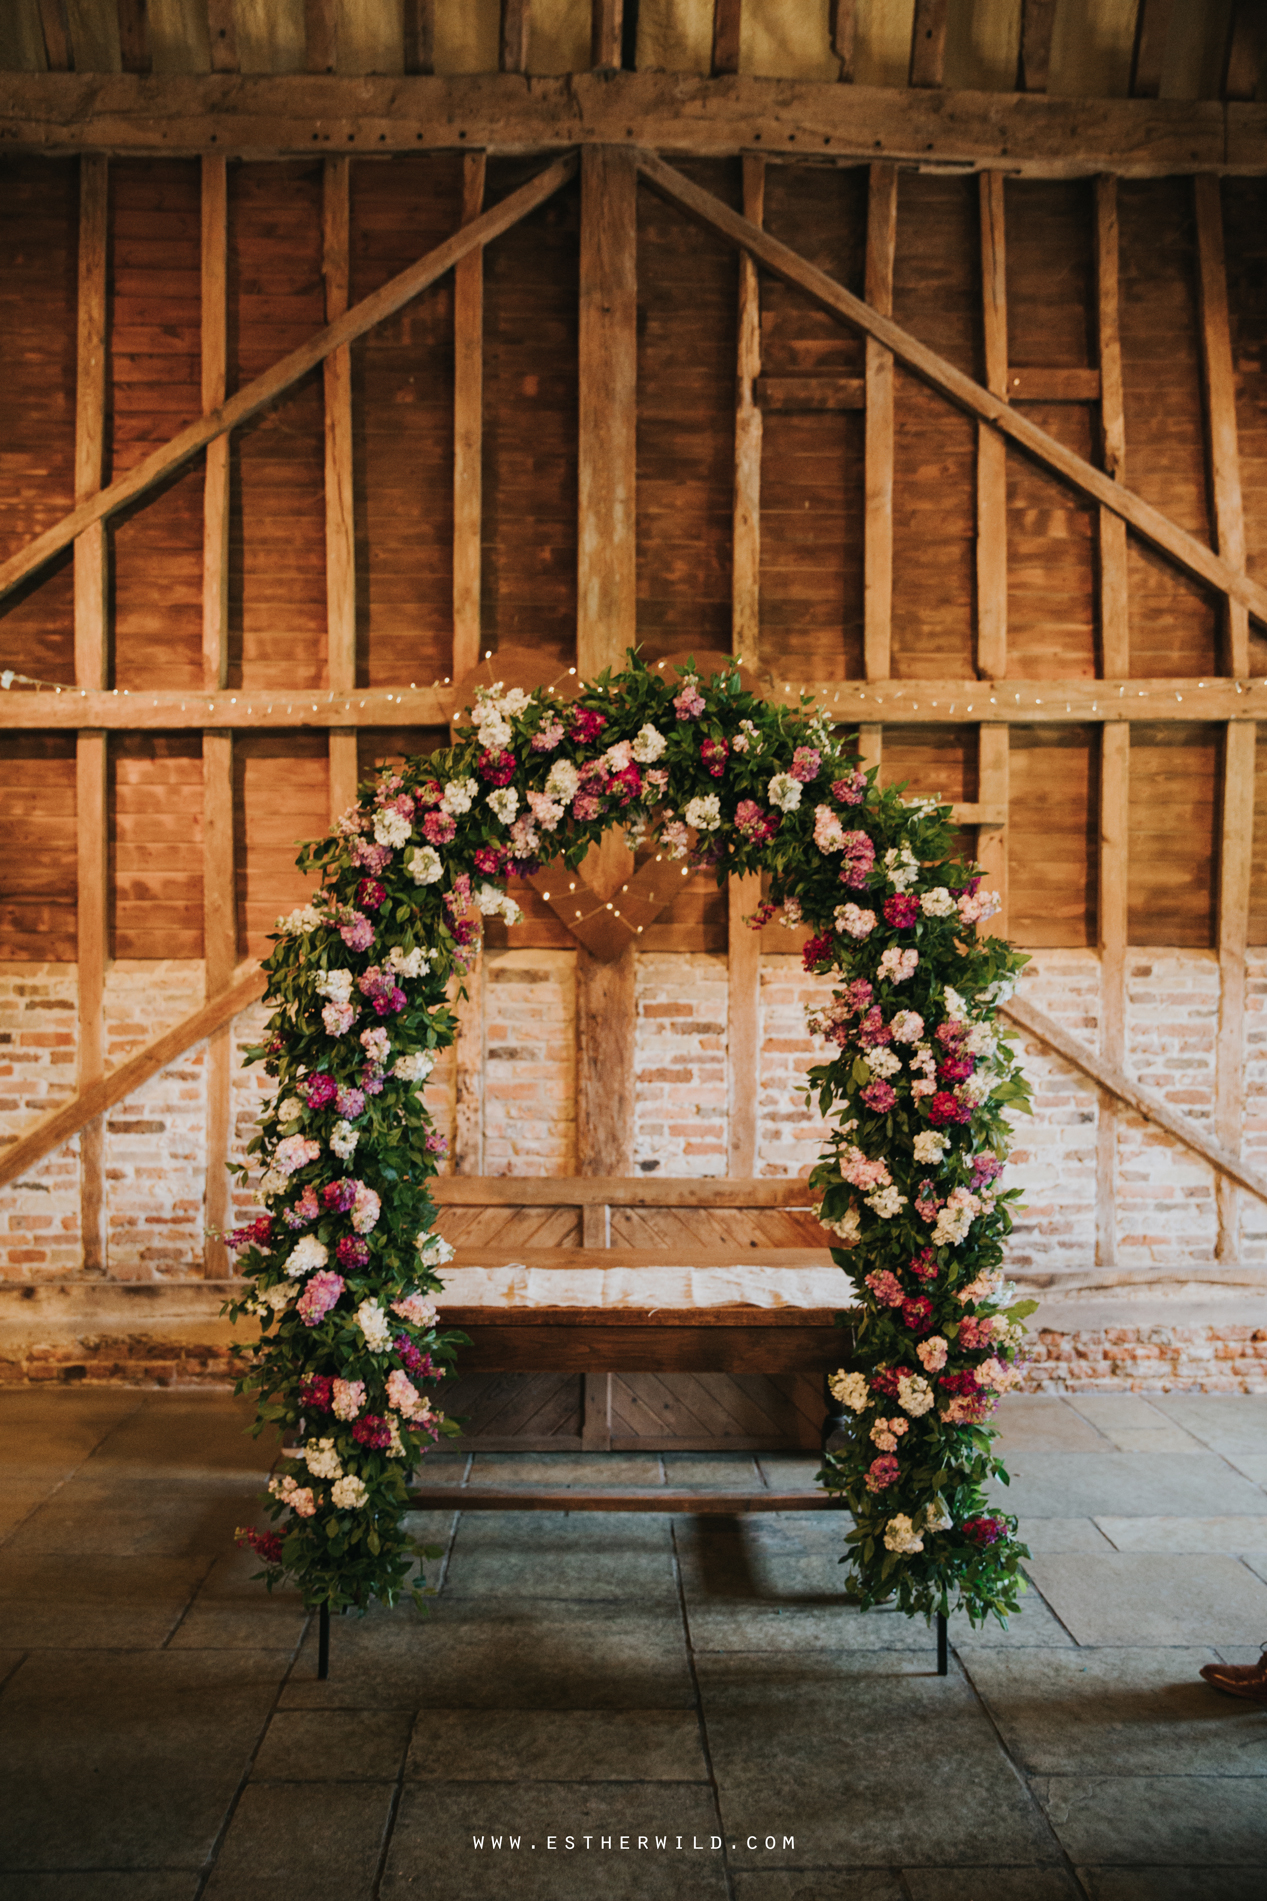 The_Red_Barn_Wedding_Kings_Lynn_Norfolk_IMG_0716.jpg